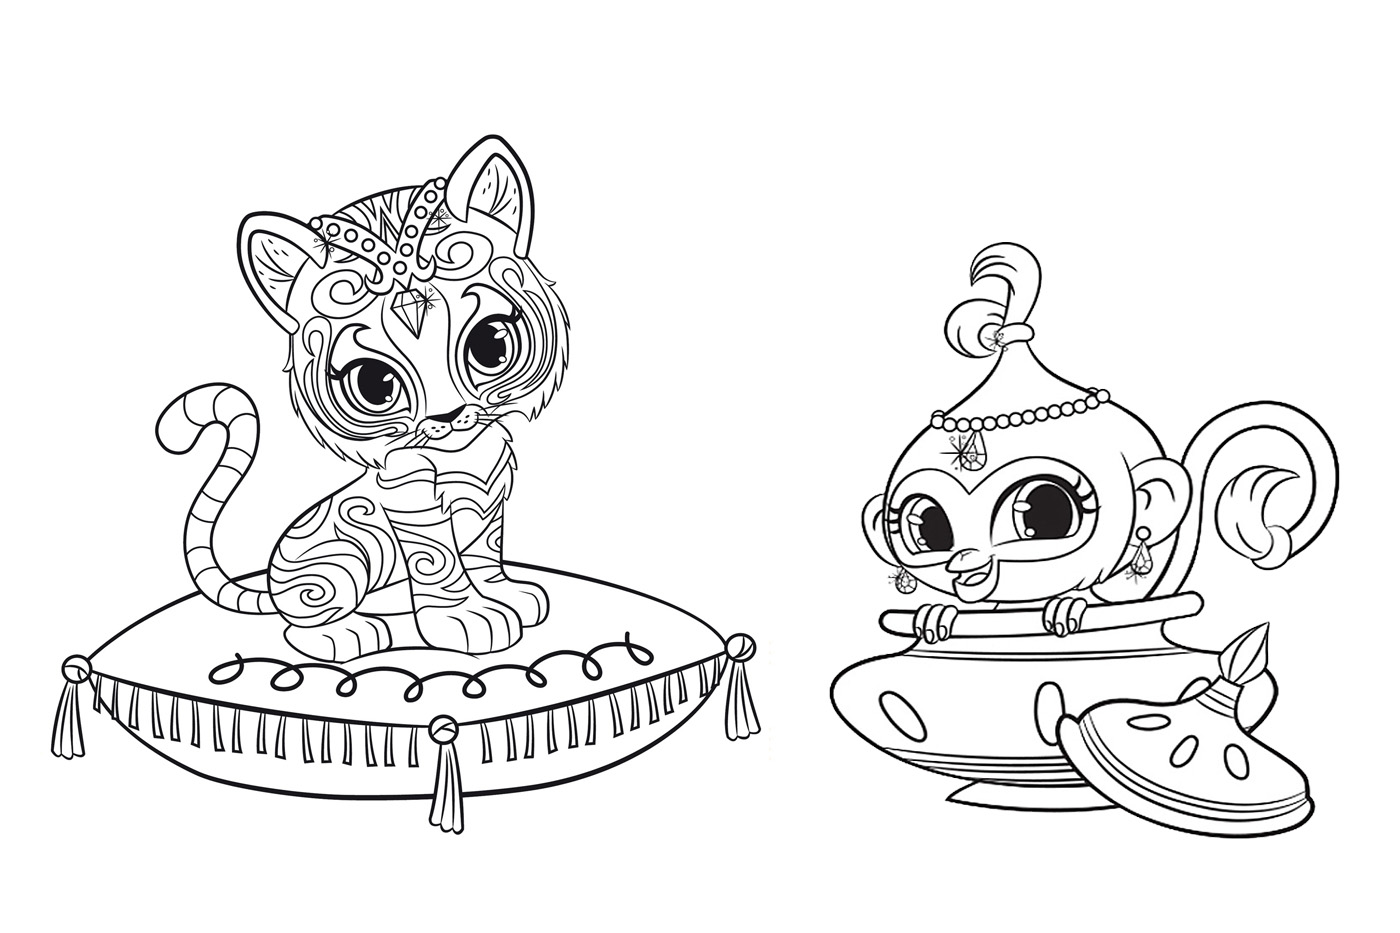 Coloring: Shimmer And Shine Coloring Pages To Download And Print For